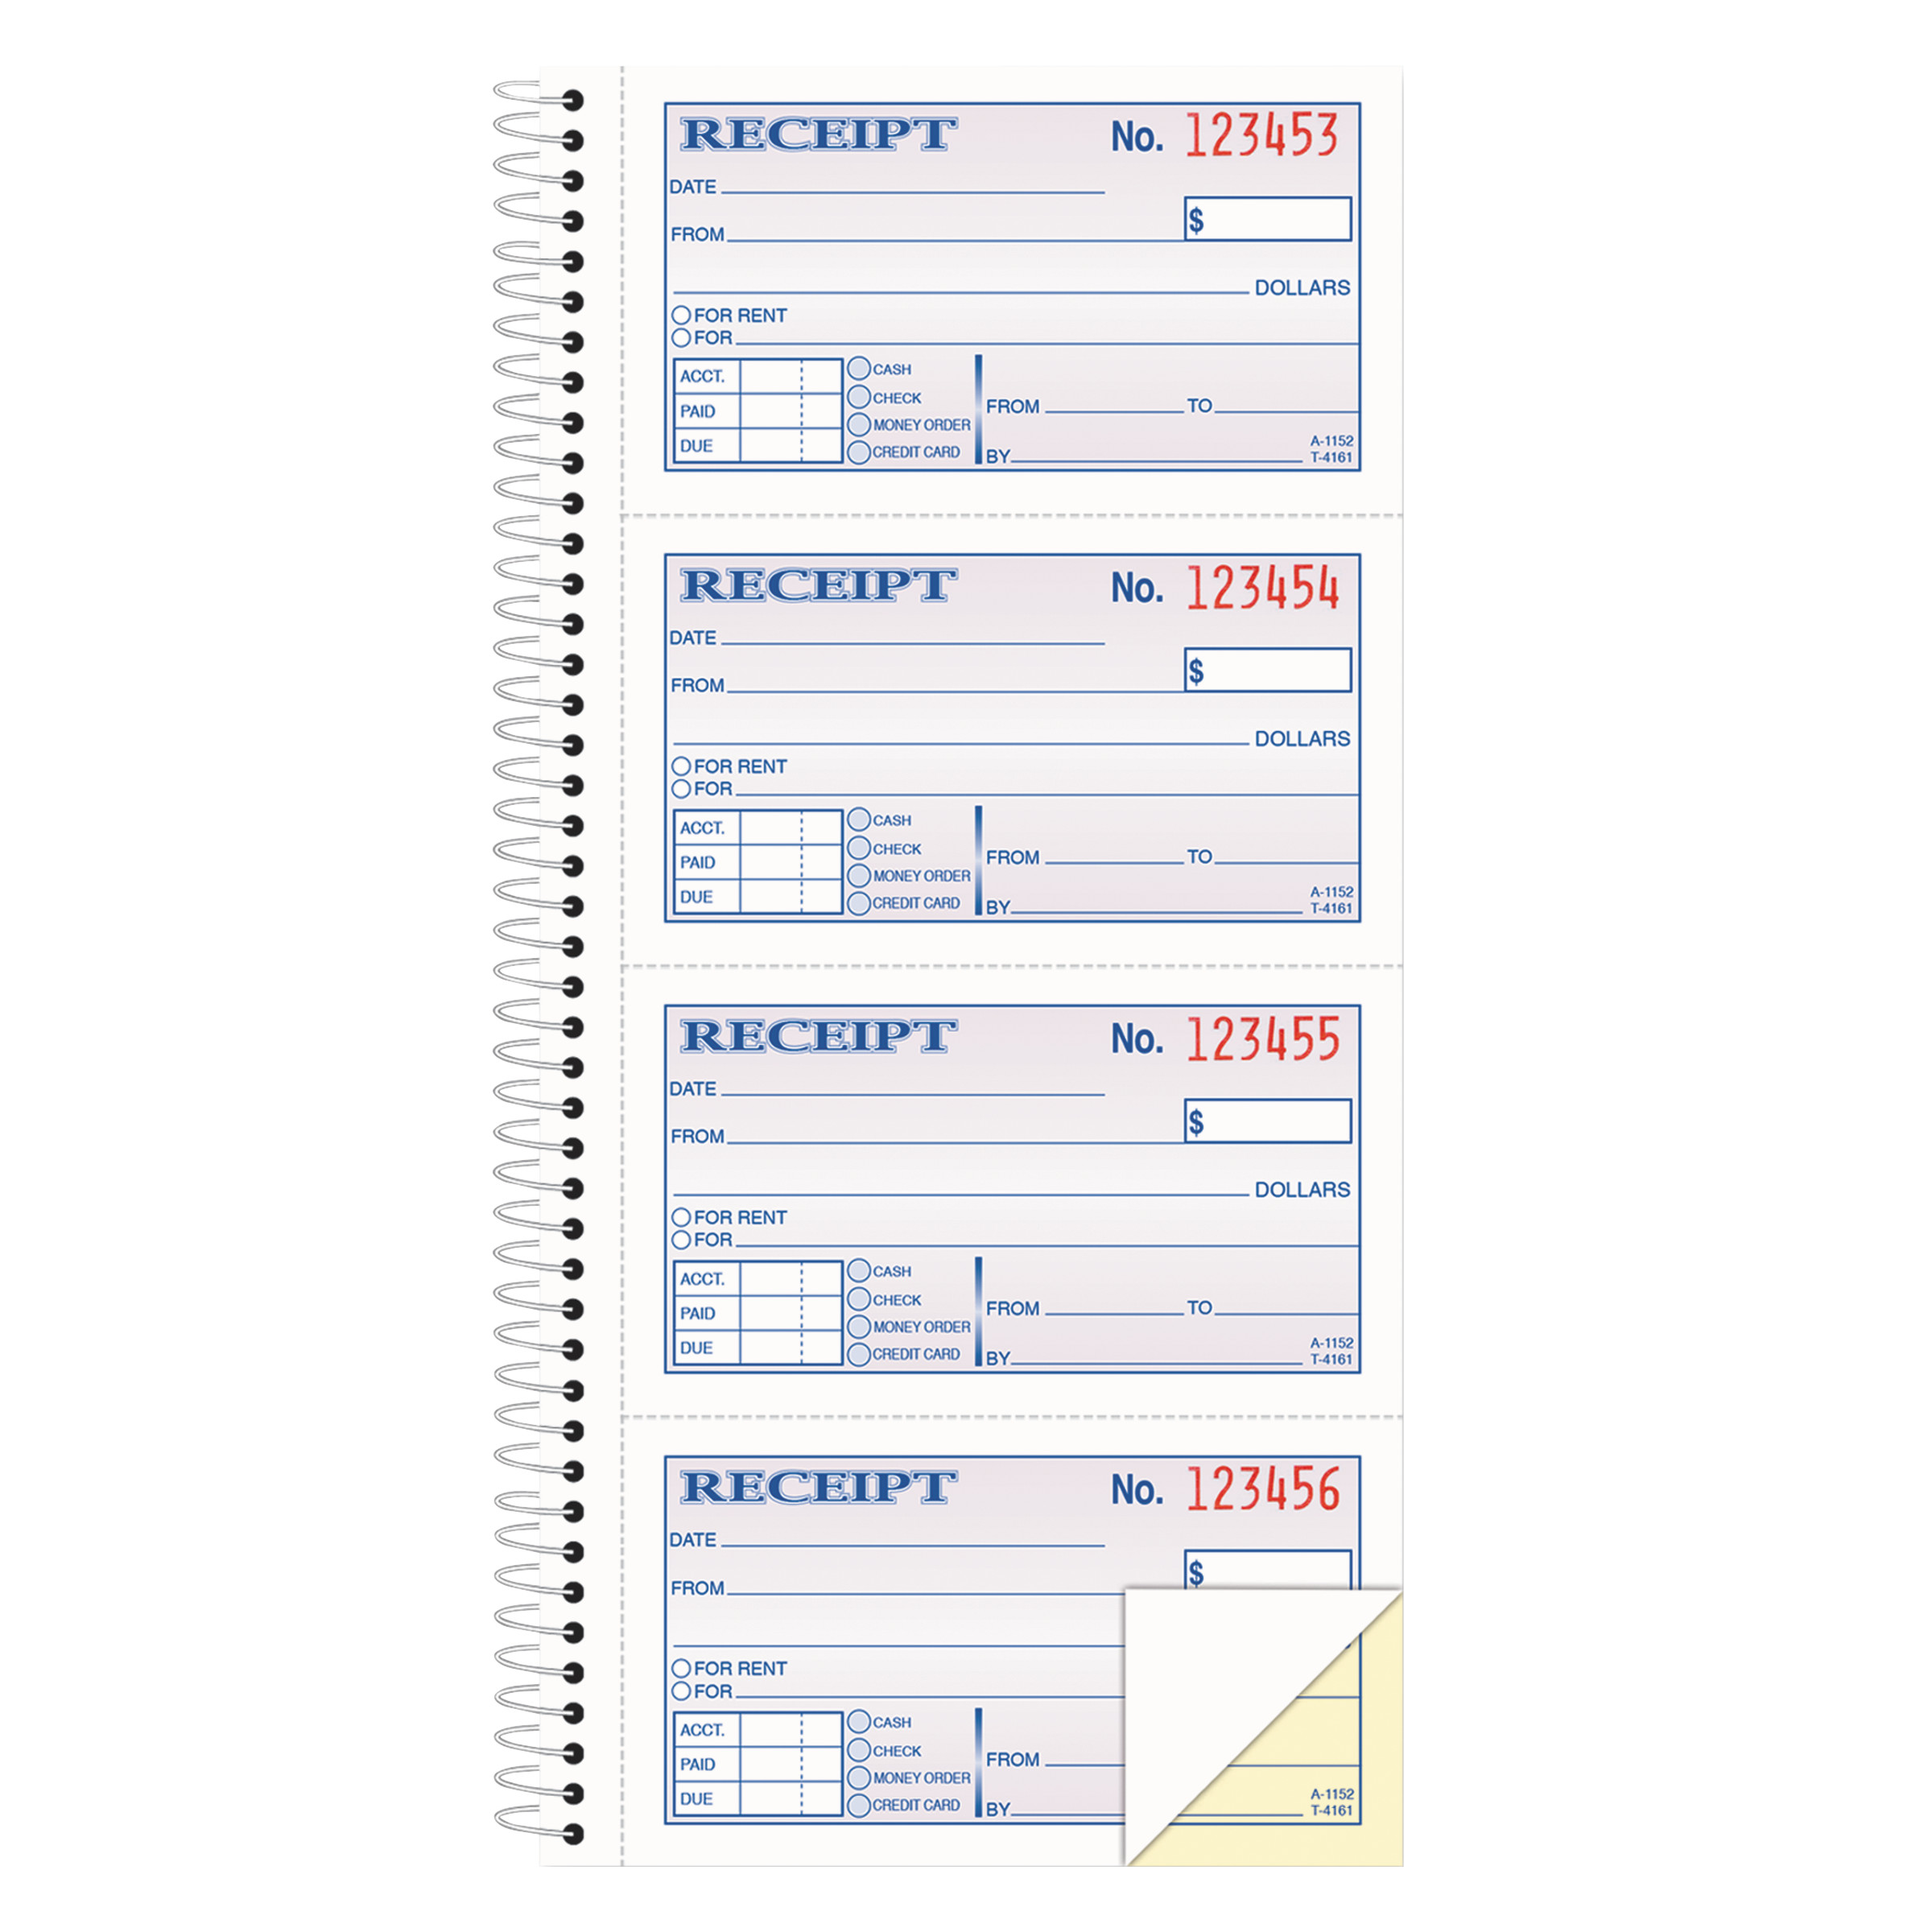 Adams TwoPart Rent Receipt Book   X   Carbonless